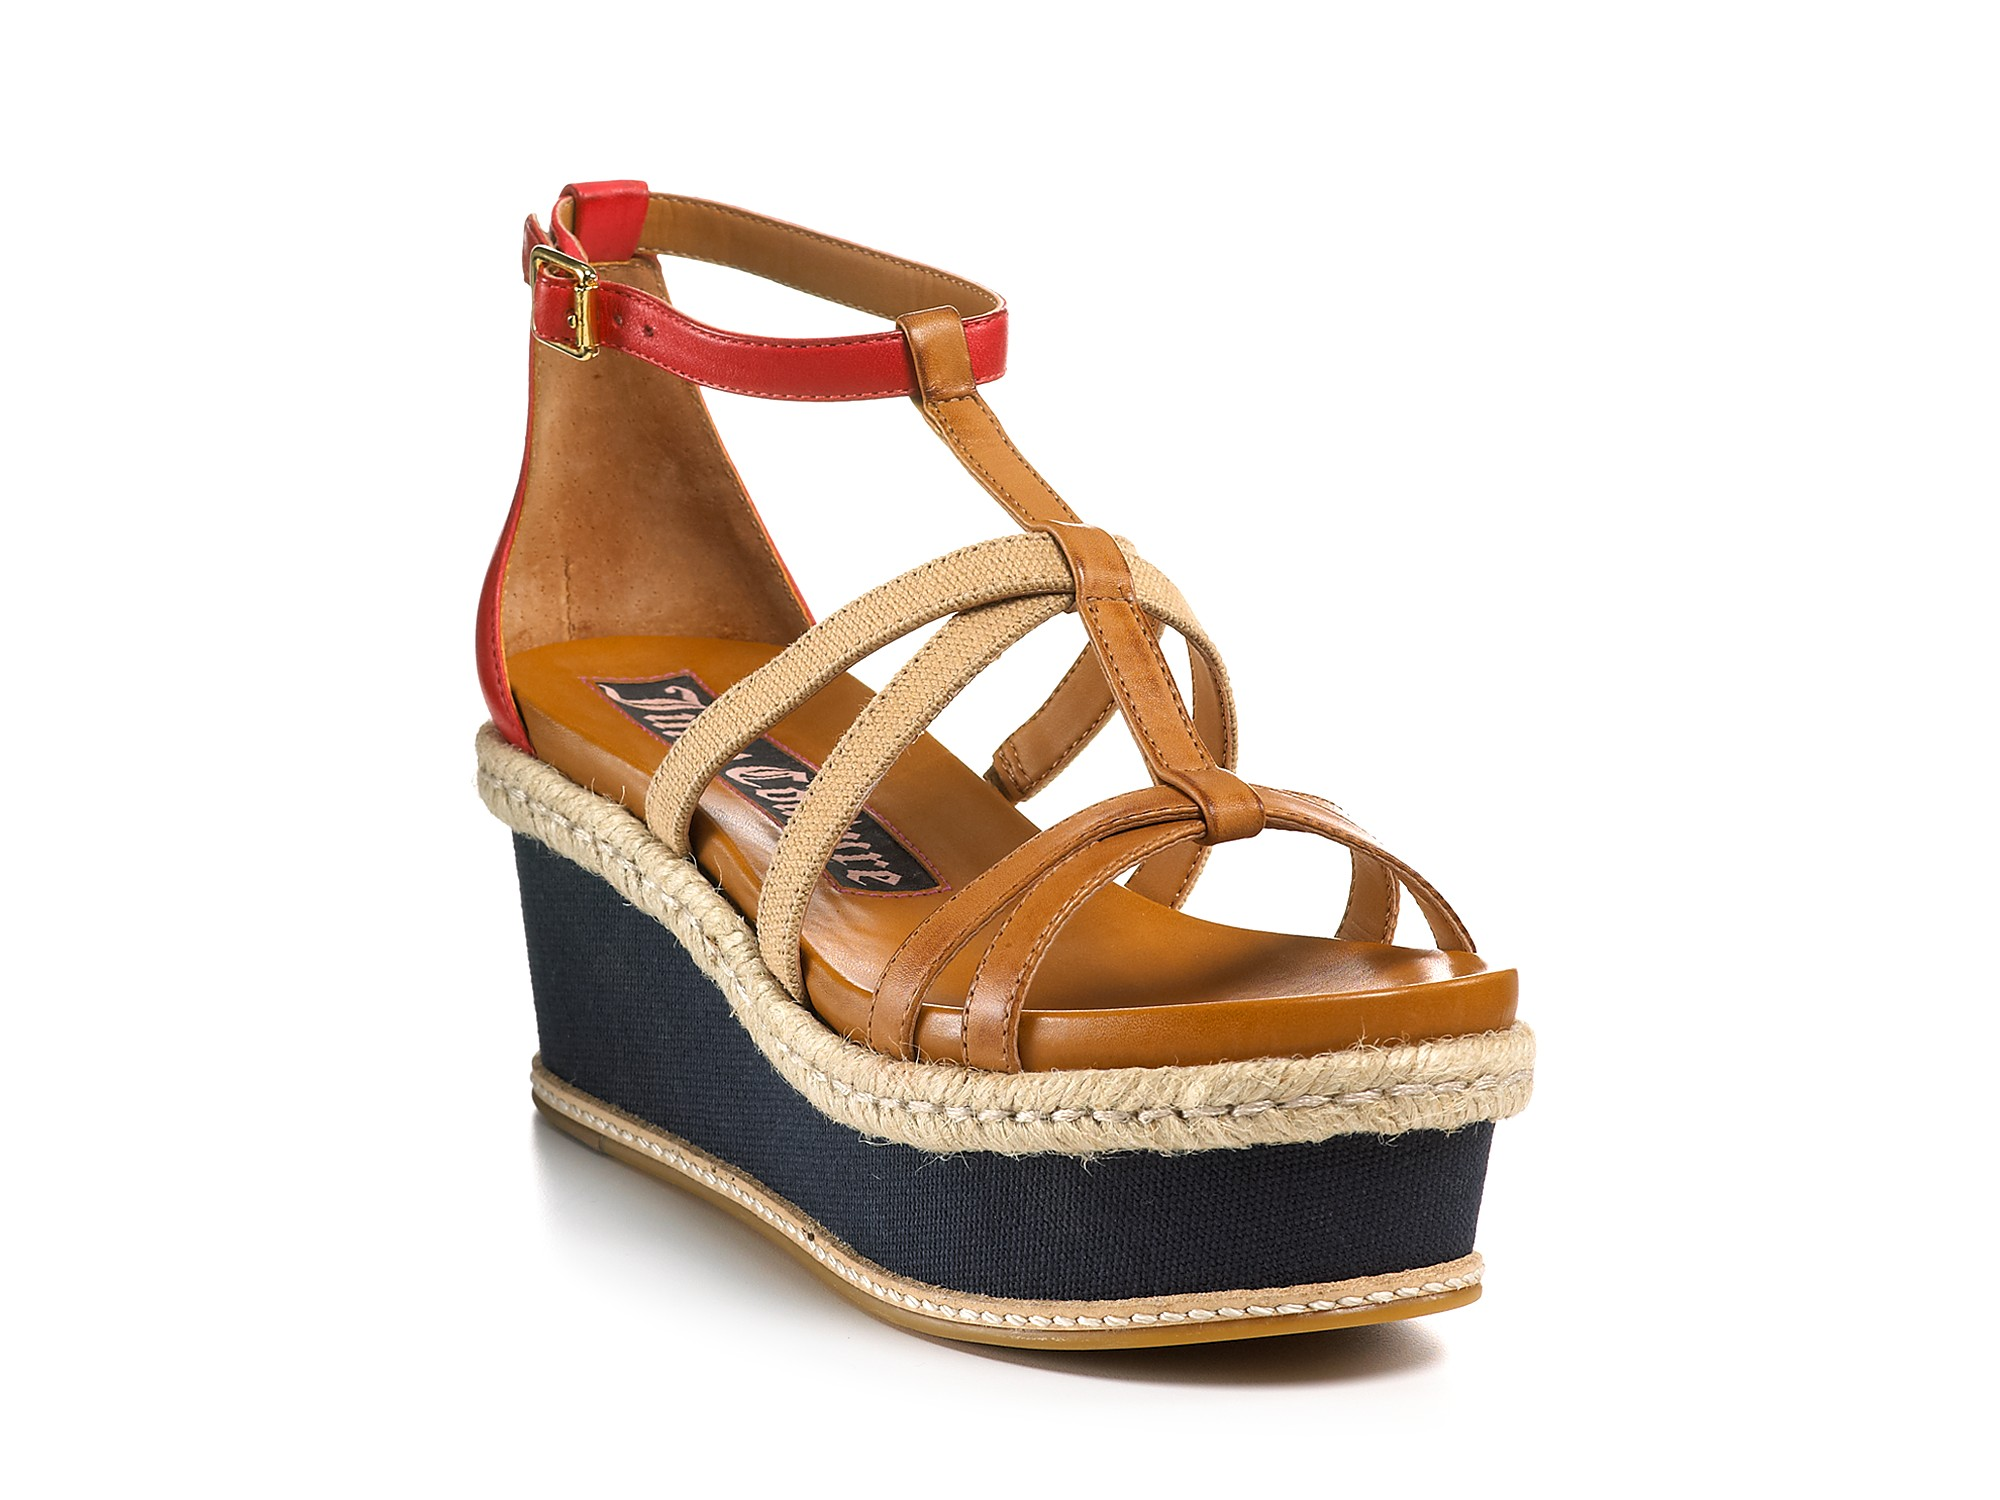 Juicy Couture Sandals Moira Flat Strappy Wedges In Brown